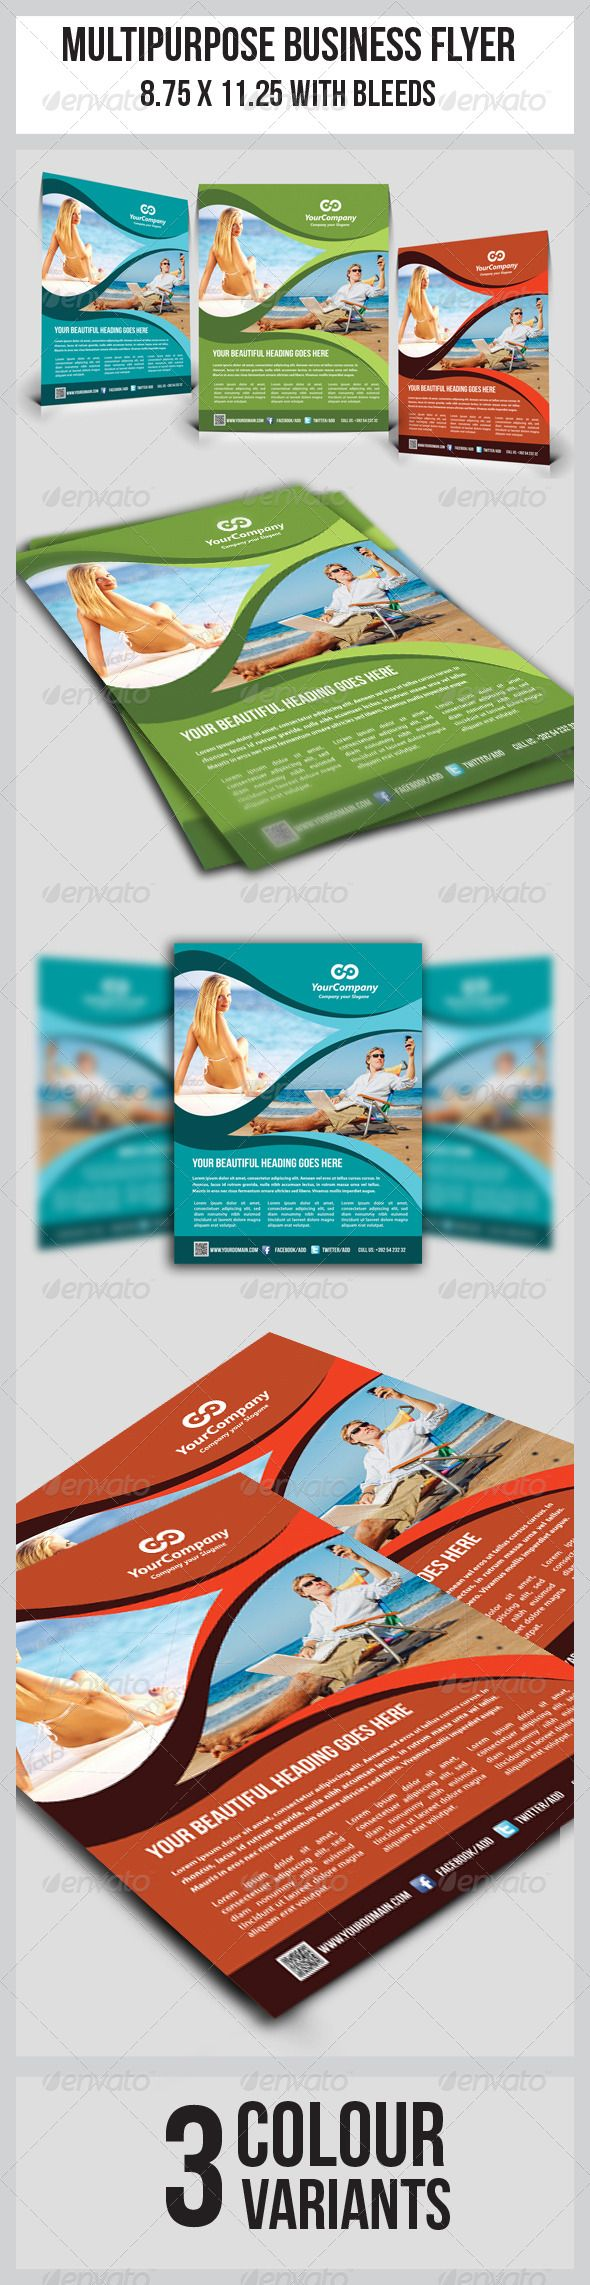 """Tourism Flyer Vol.1 #GraphicRiver This simple and generic flyer template perfectly use for multipurpose businesses. Easily edit to fit your needs. Colour : CMYK Files : .psd Size : 8.5"""" x 11"""" / 300dpi Fully layered Smart object layer to edit images images used are not included. help.txt included for fonts and images used details Fonts used: Myriad Pro .dafont /bebas-neue.font Created: 9July13 GraphicsFilesIncluded: PhotoshopPSD Layered: Yes MinimumAdobeCSVersion: CS4 Tags: a4 #advertising…"""